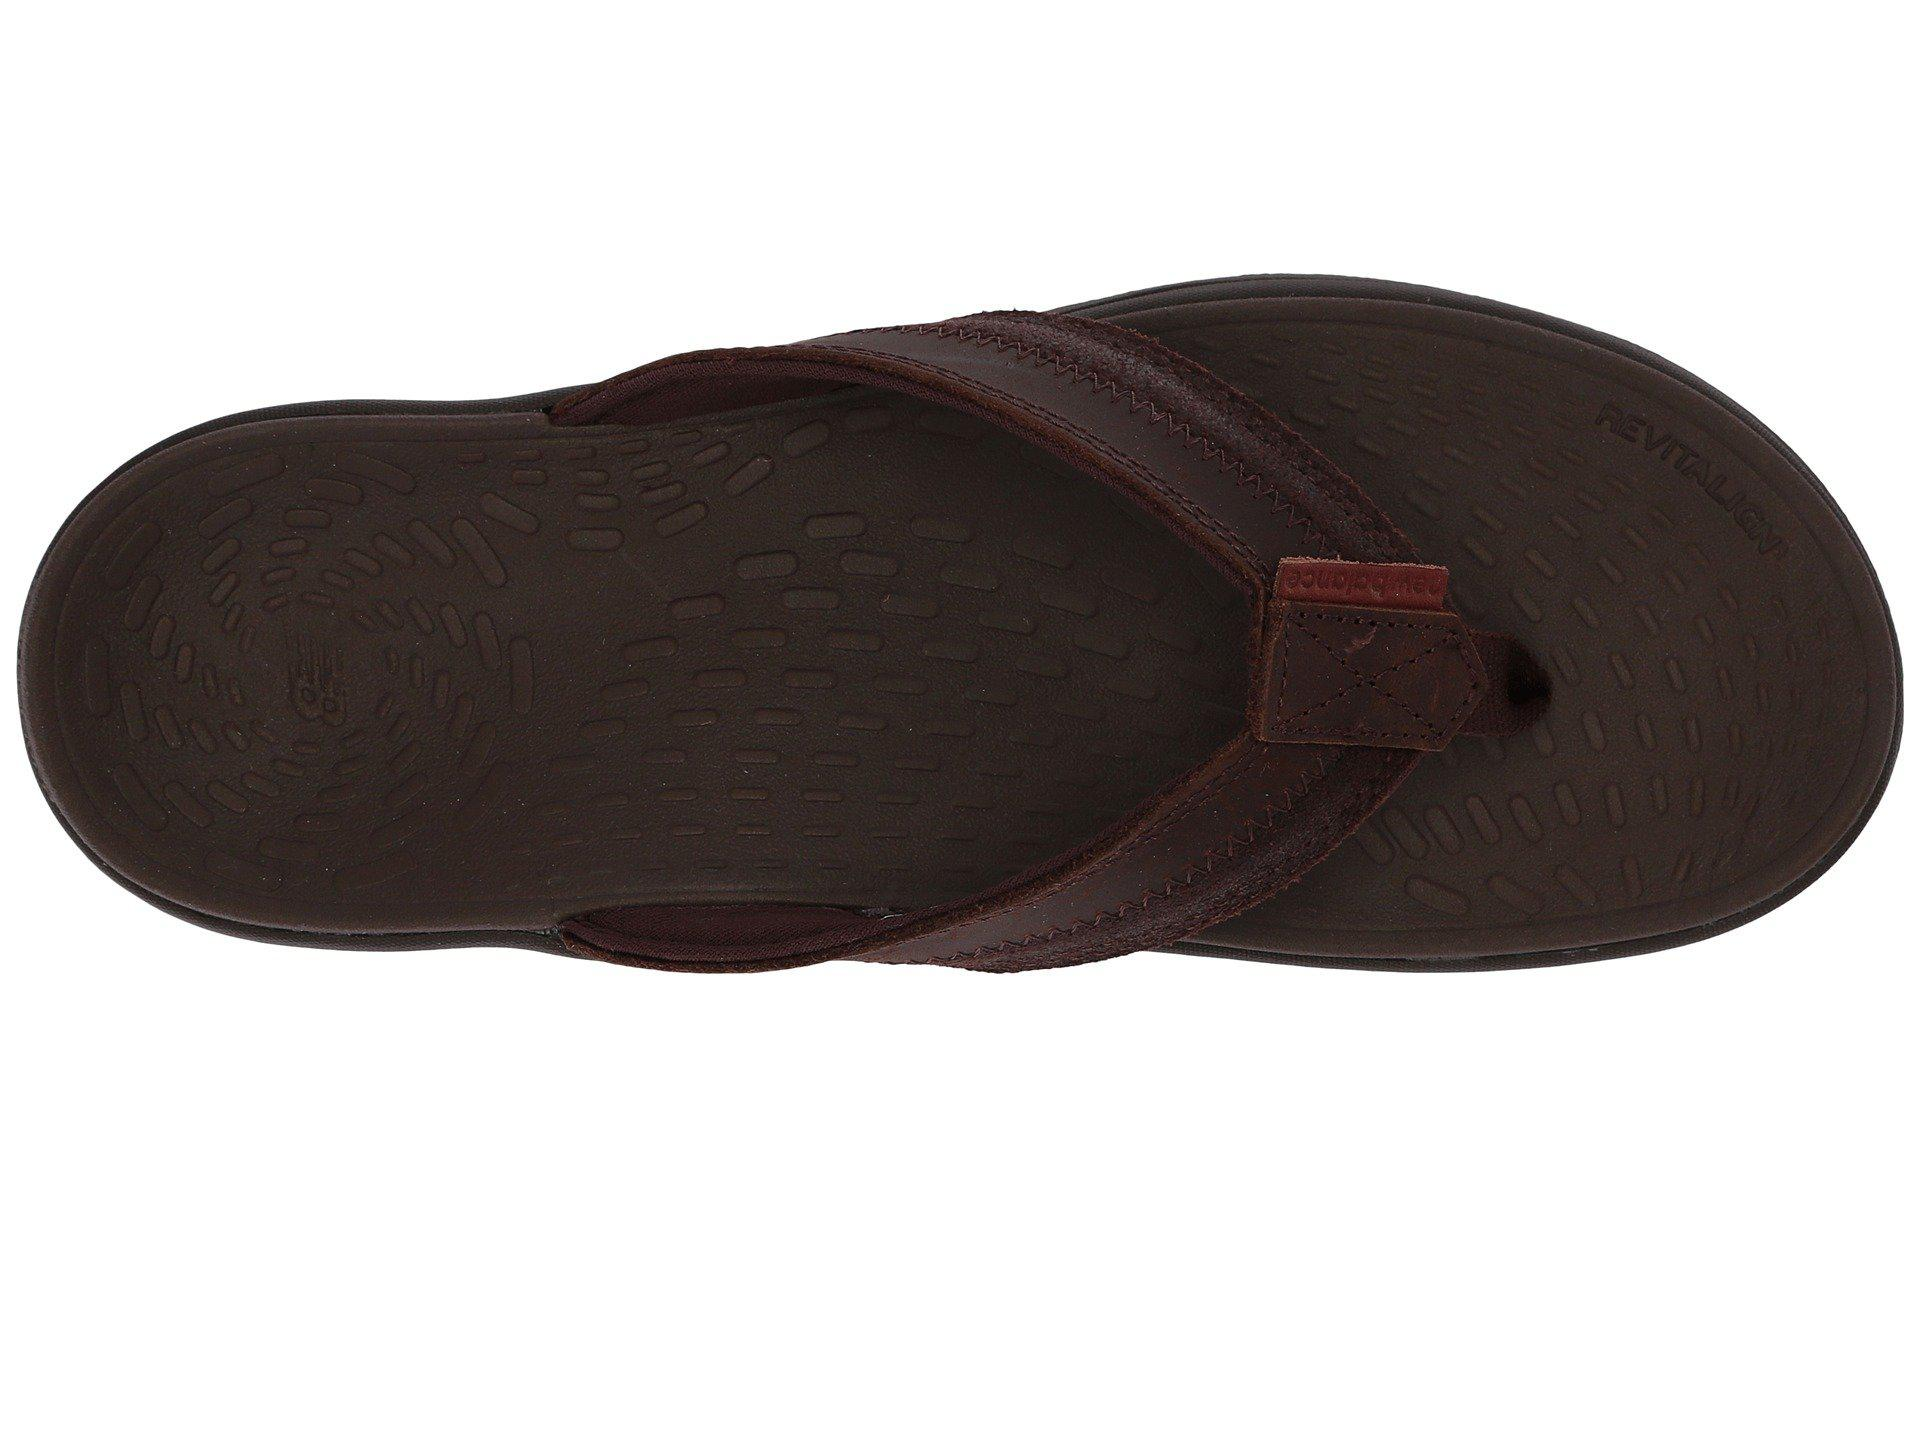 a9cc7840e Lyst - New Balance Pinnacle Flip (whisky) Men s Sandals in Brown for Men